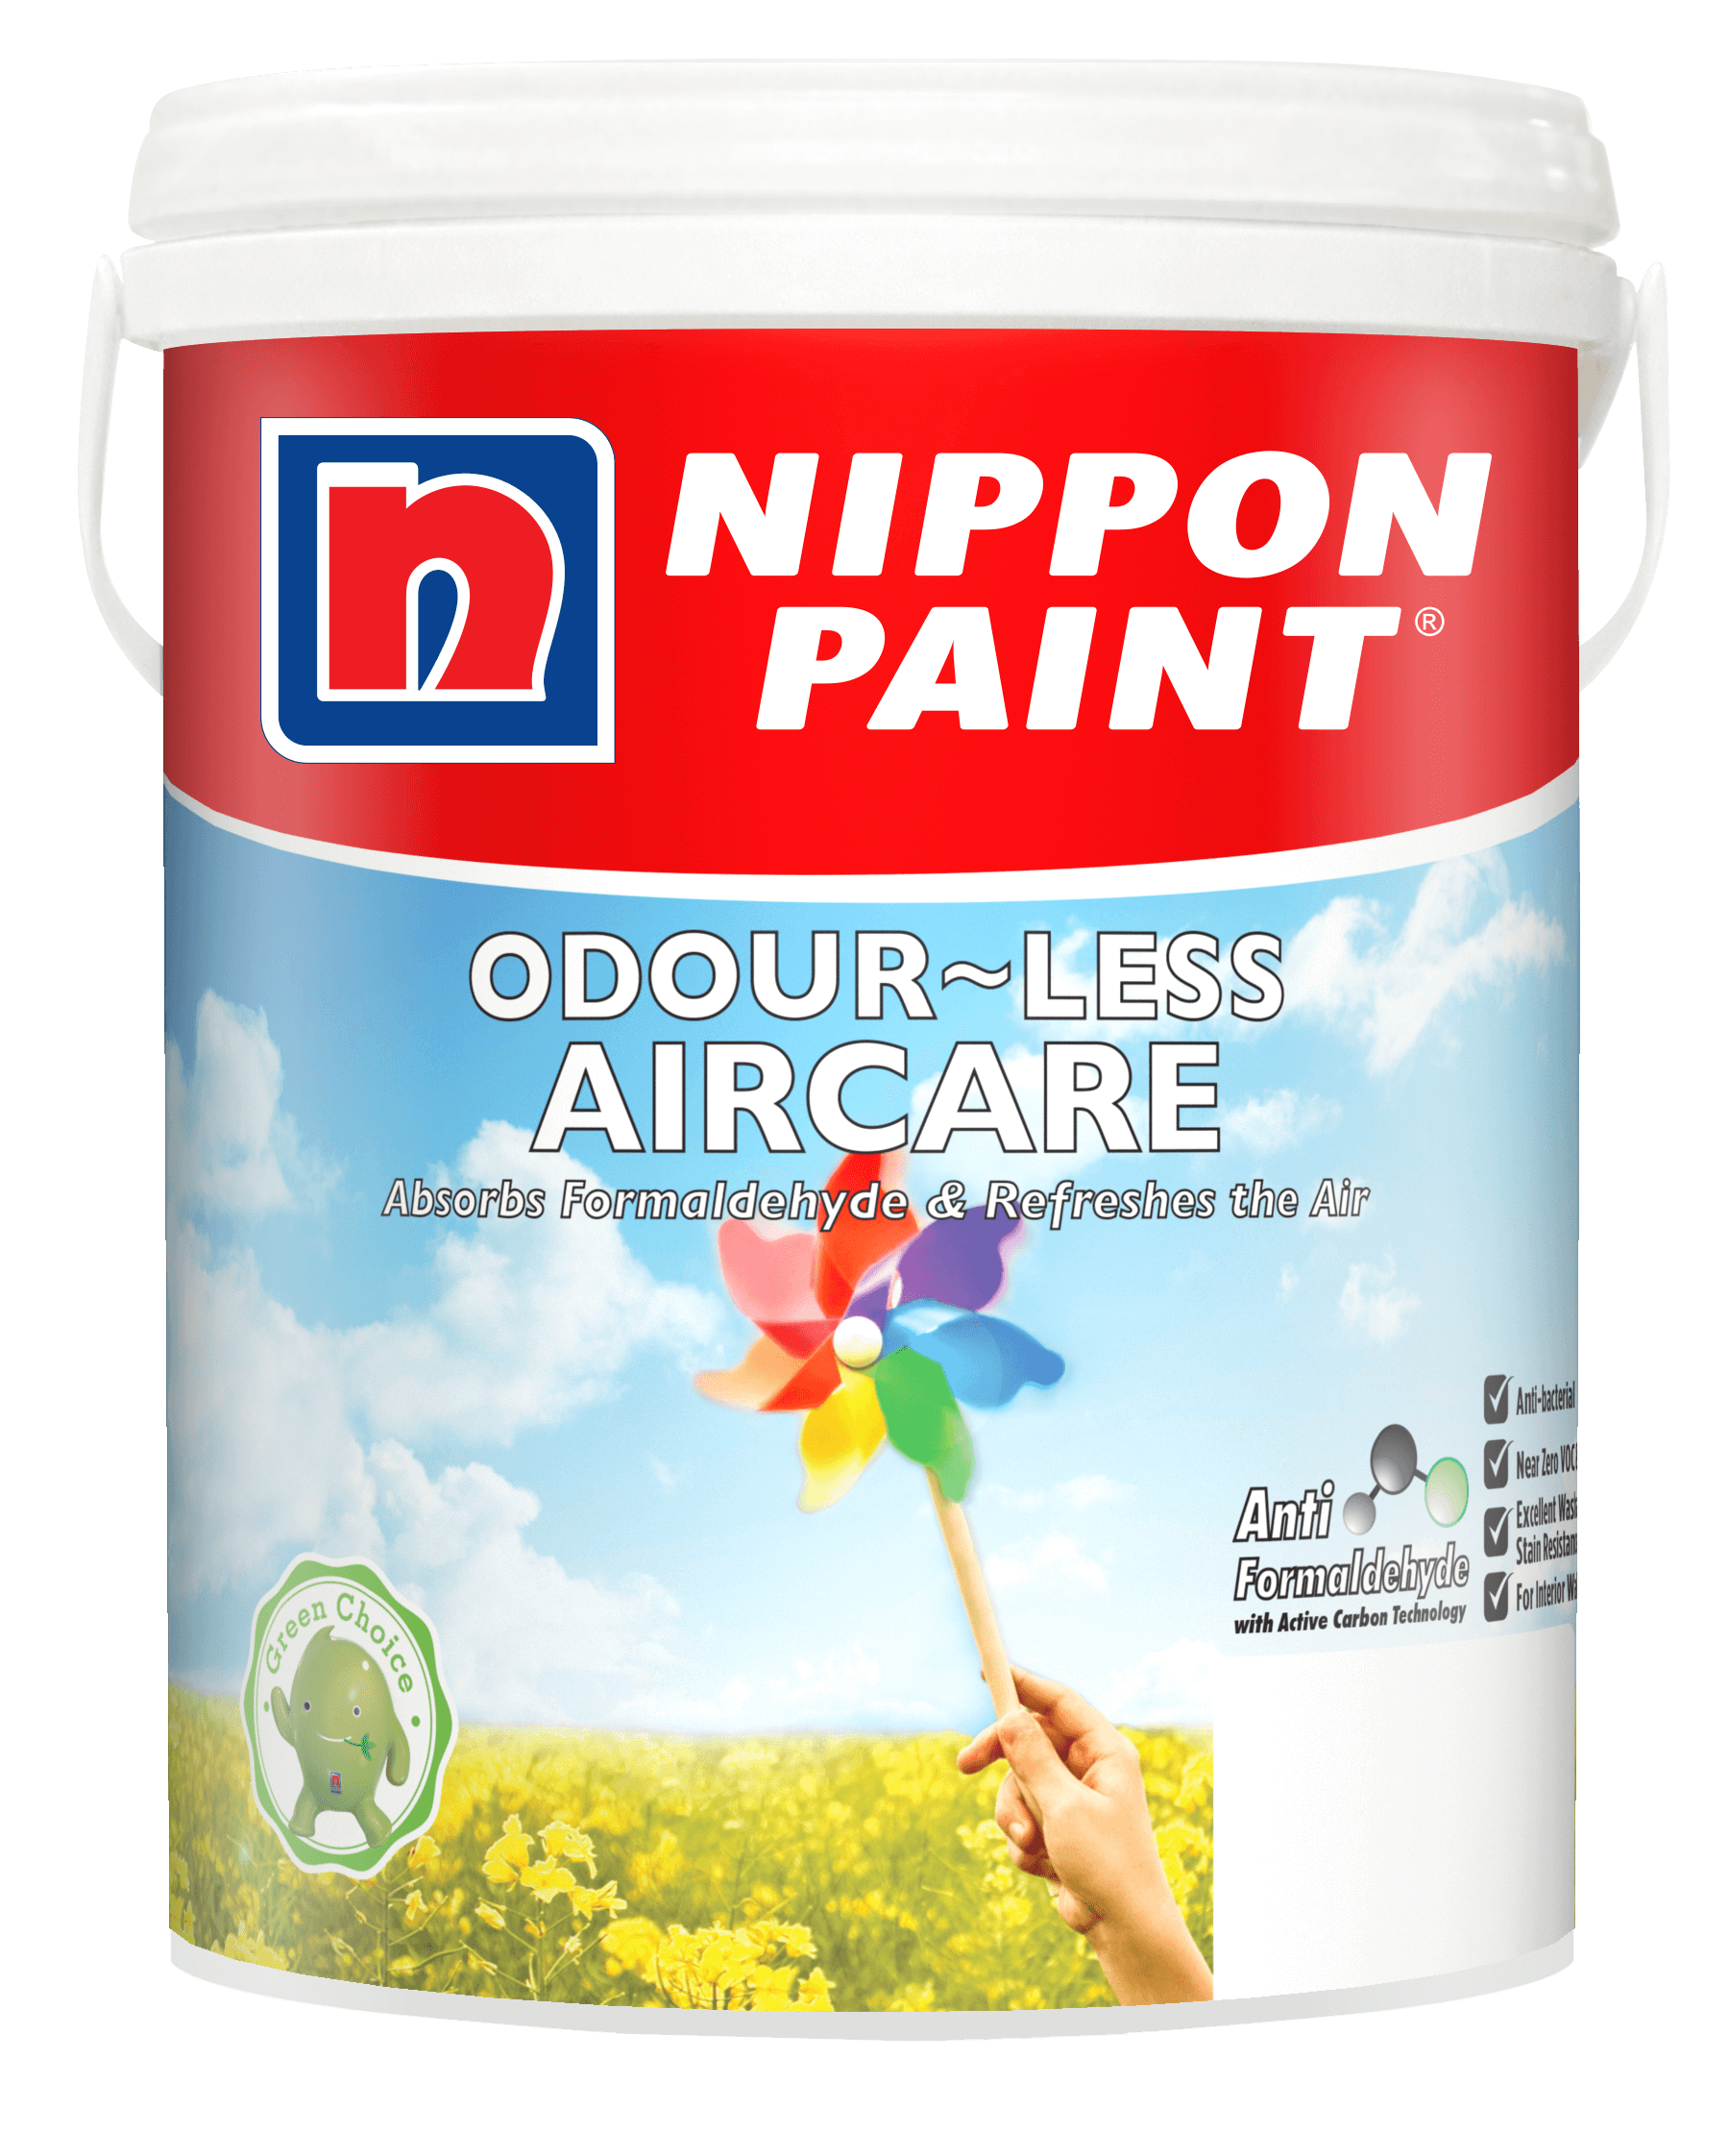 Nippon Paint Malaysia: Home Decor, Renovation, Decoration